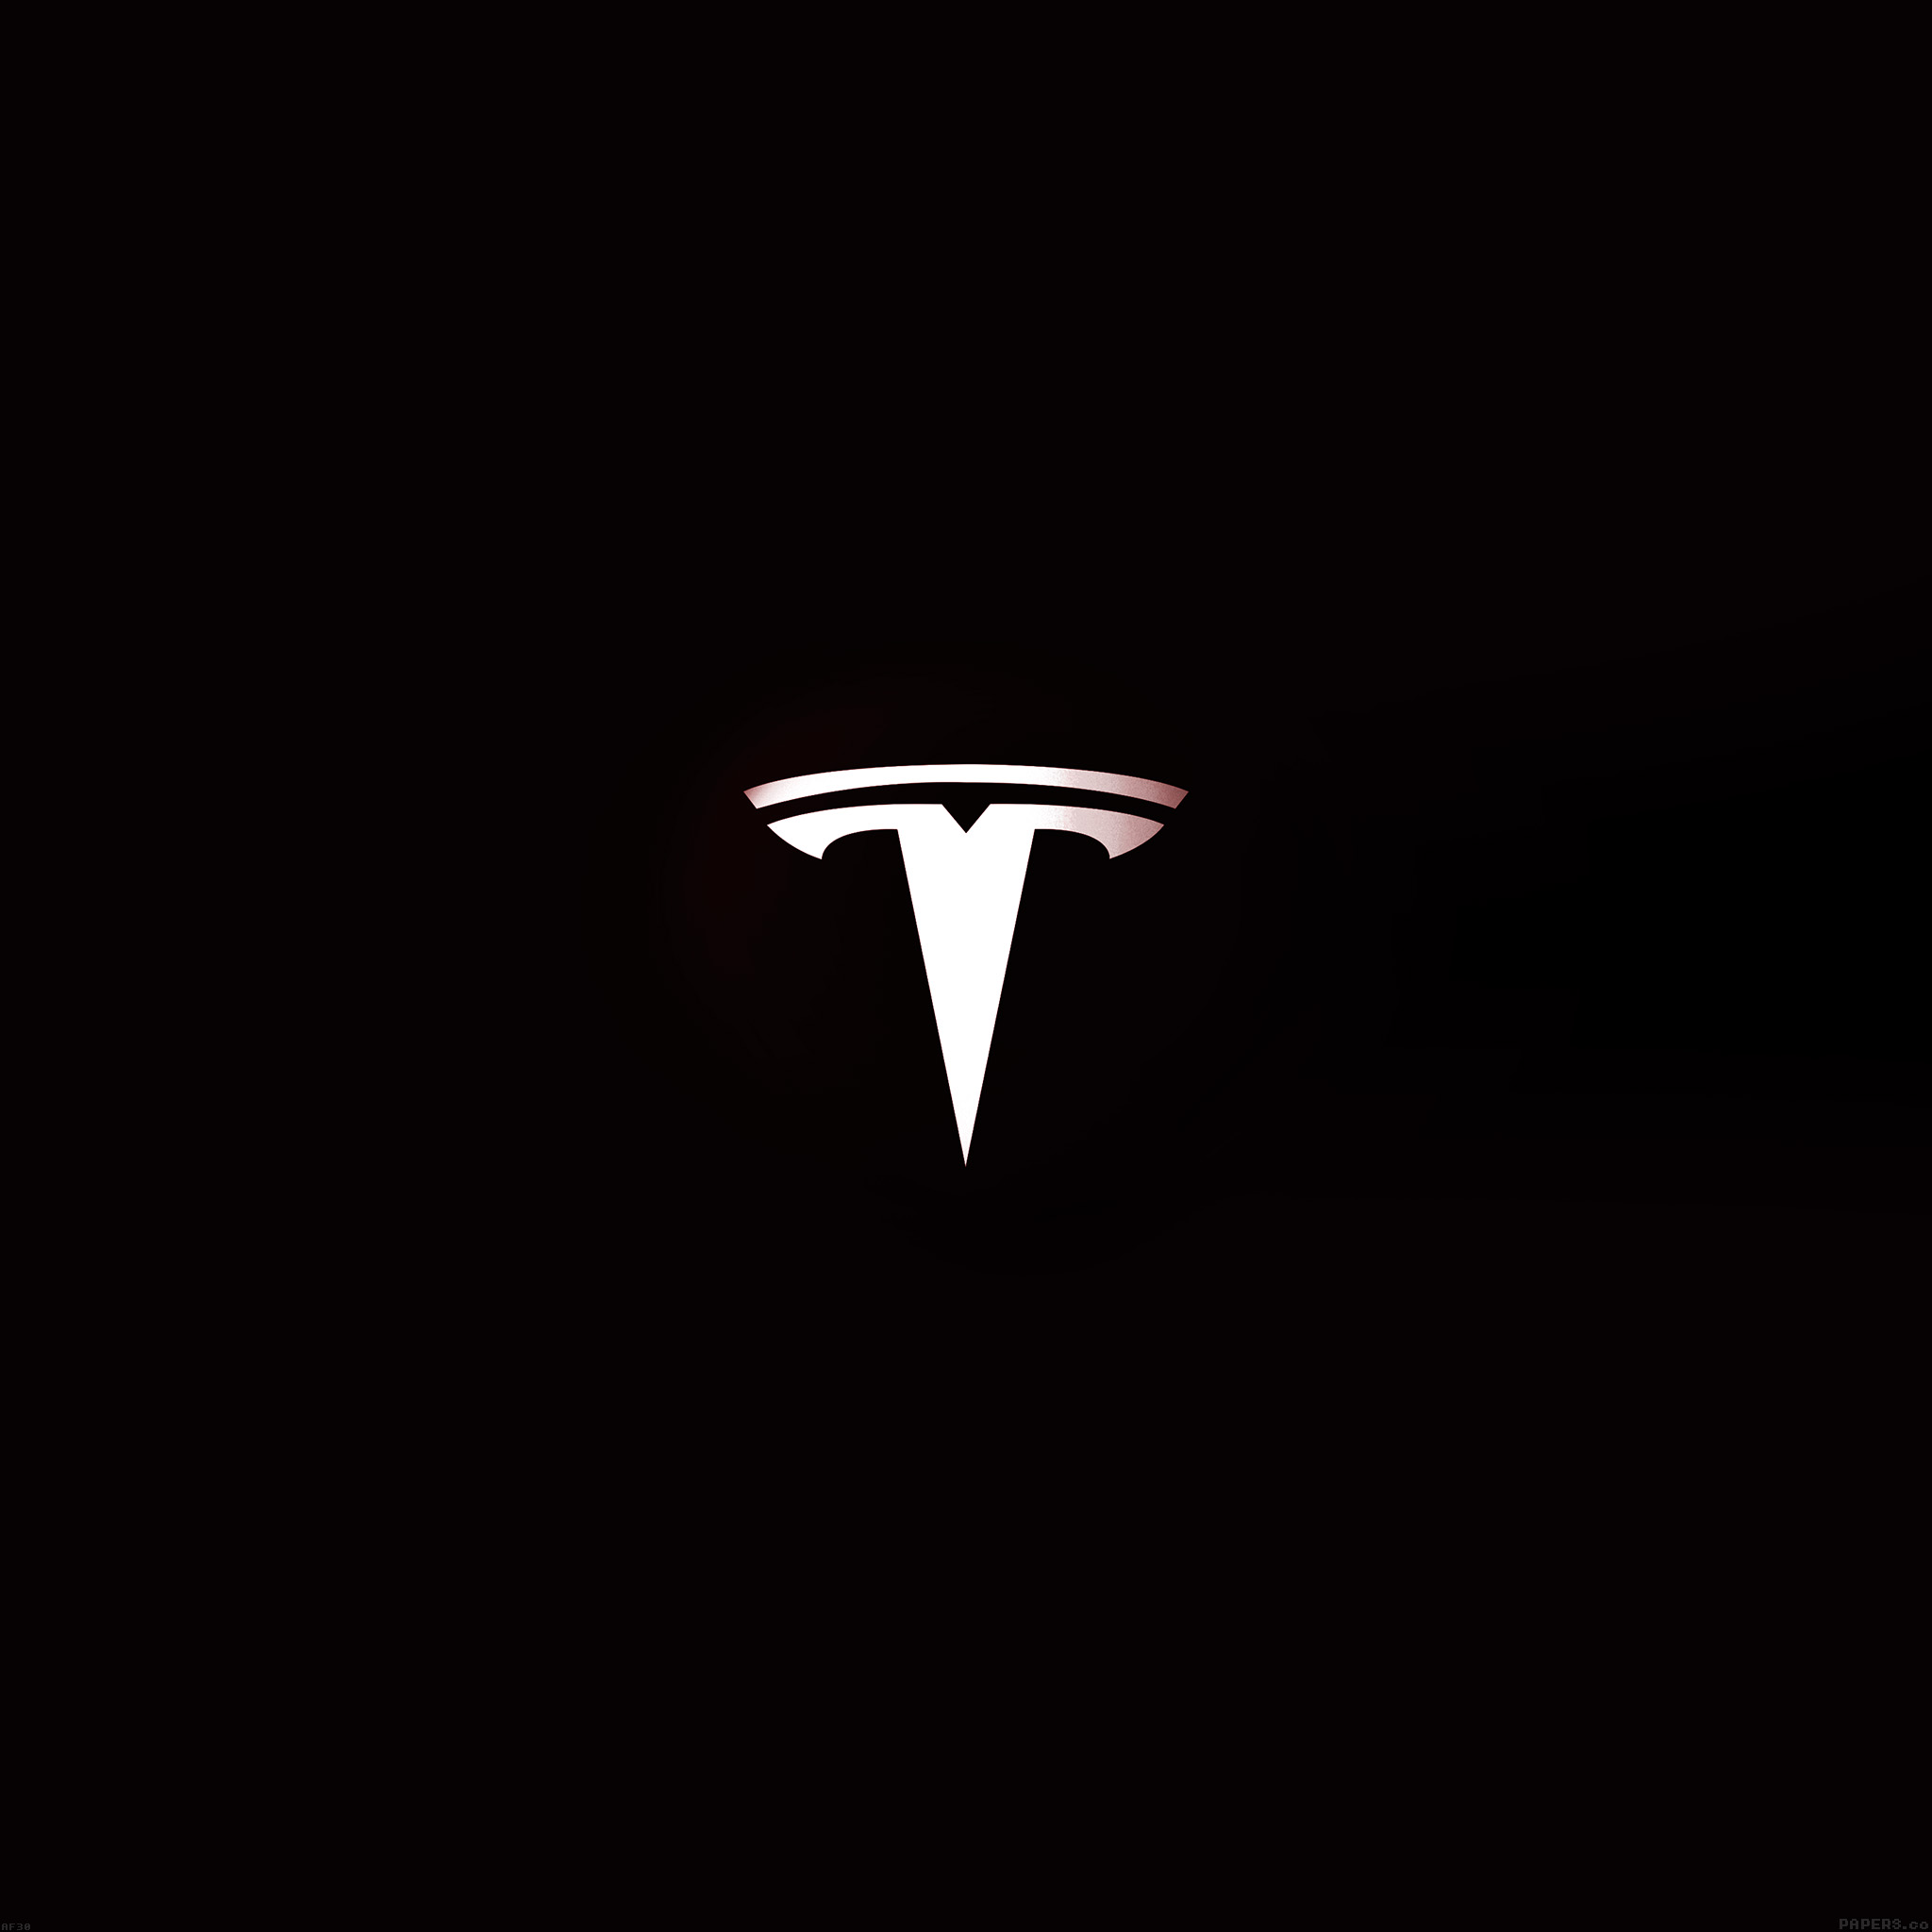 Tesla Model 3 Wallpaper Iphone: WALLPAPERS